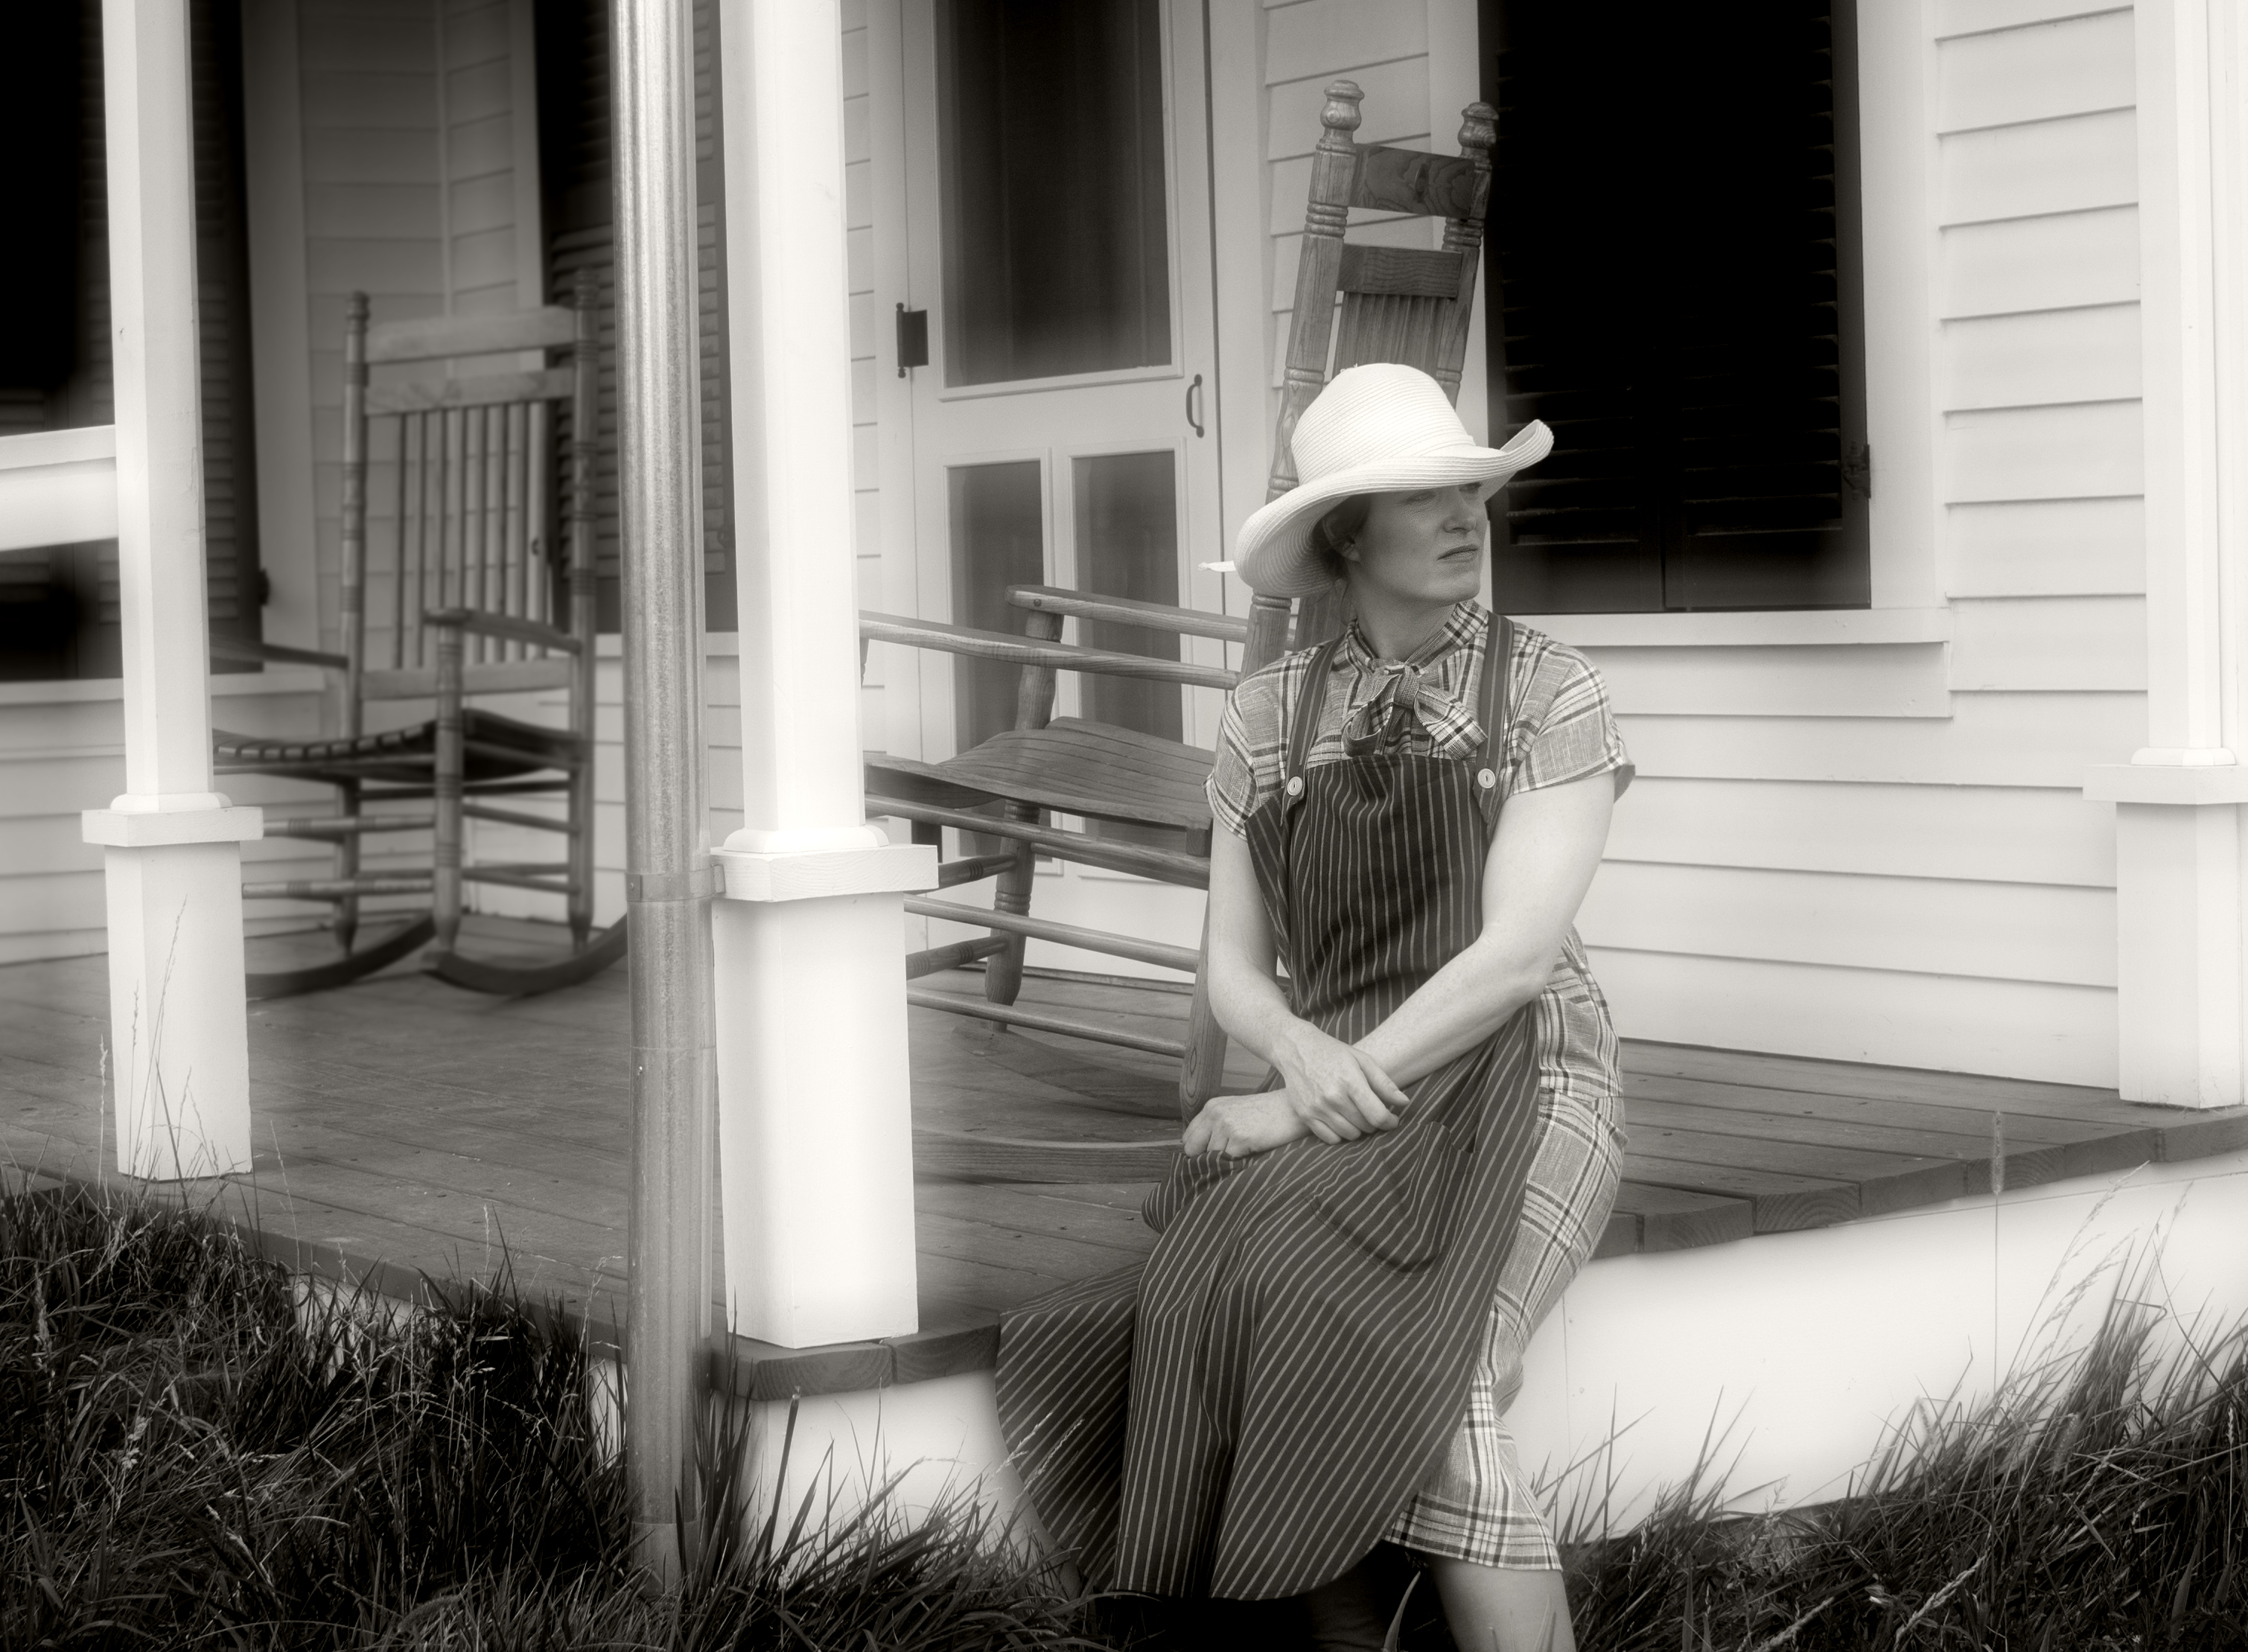 emma hart on her porch author meluso louis